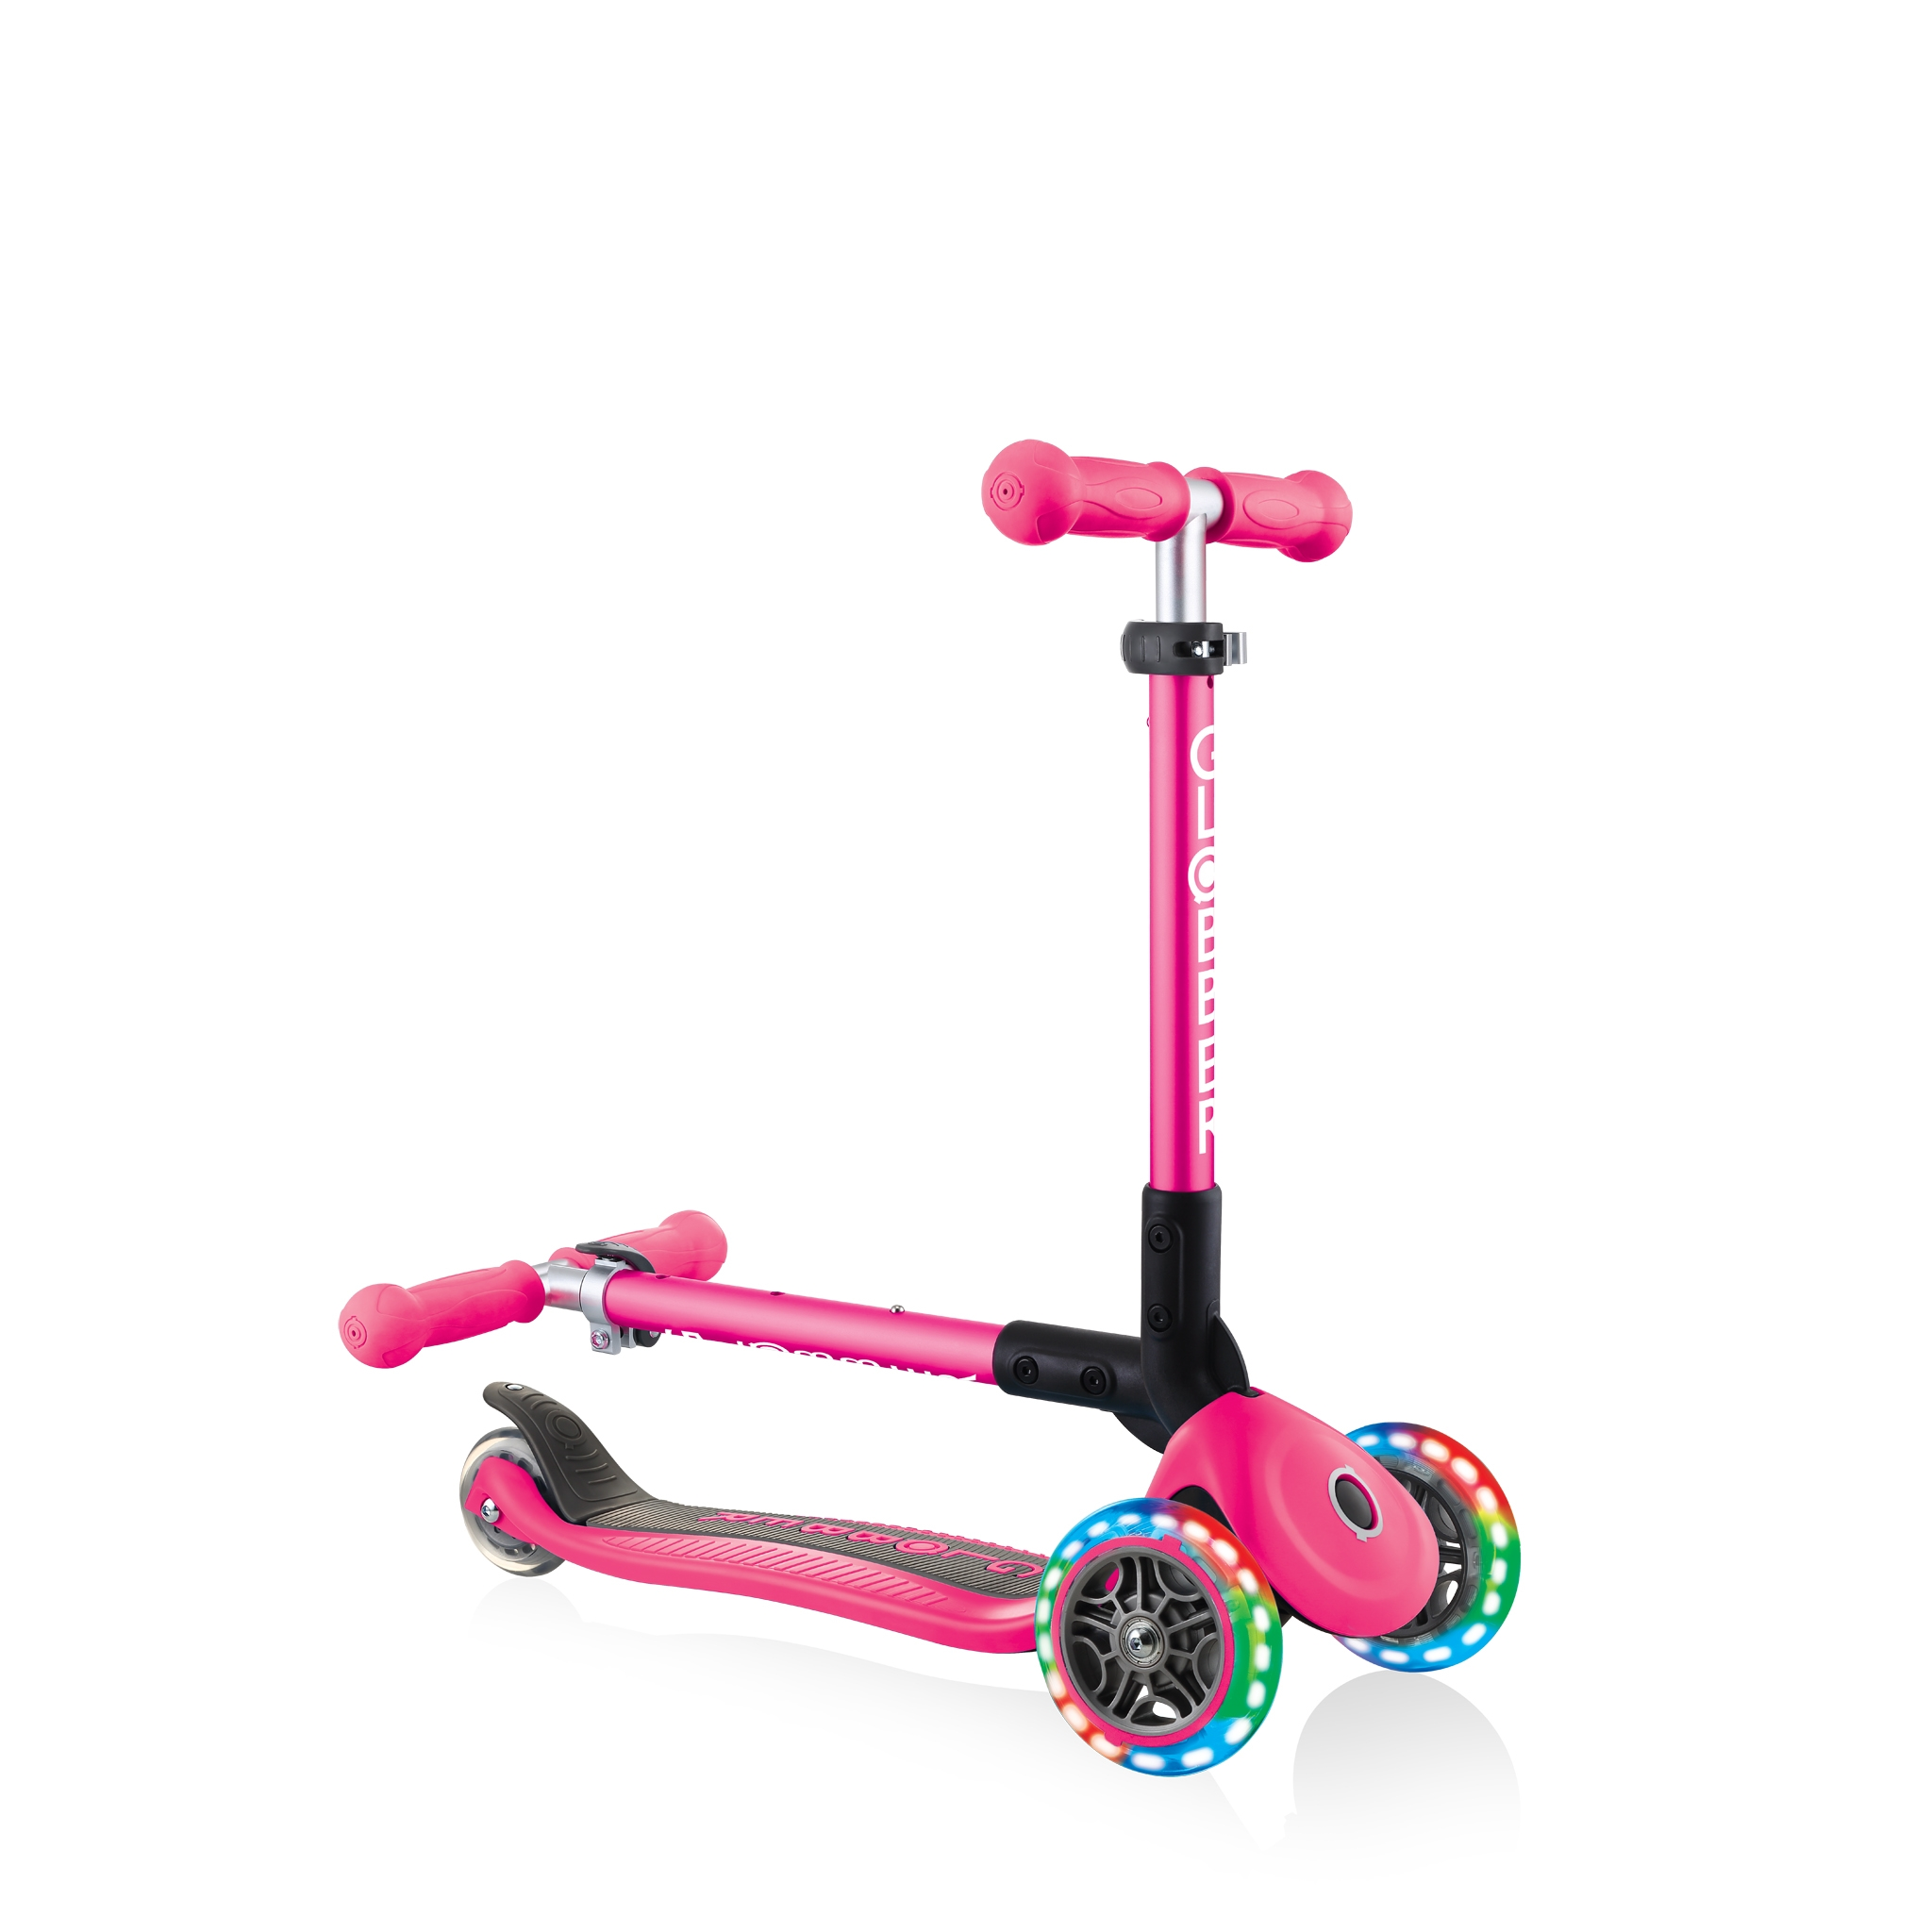 3-wheel-folding-light-up-scooter-for-toddlers-JUNIOR-FOLDABLE-LIGHTS 3